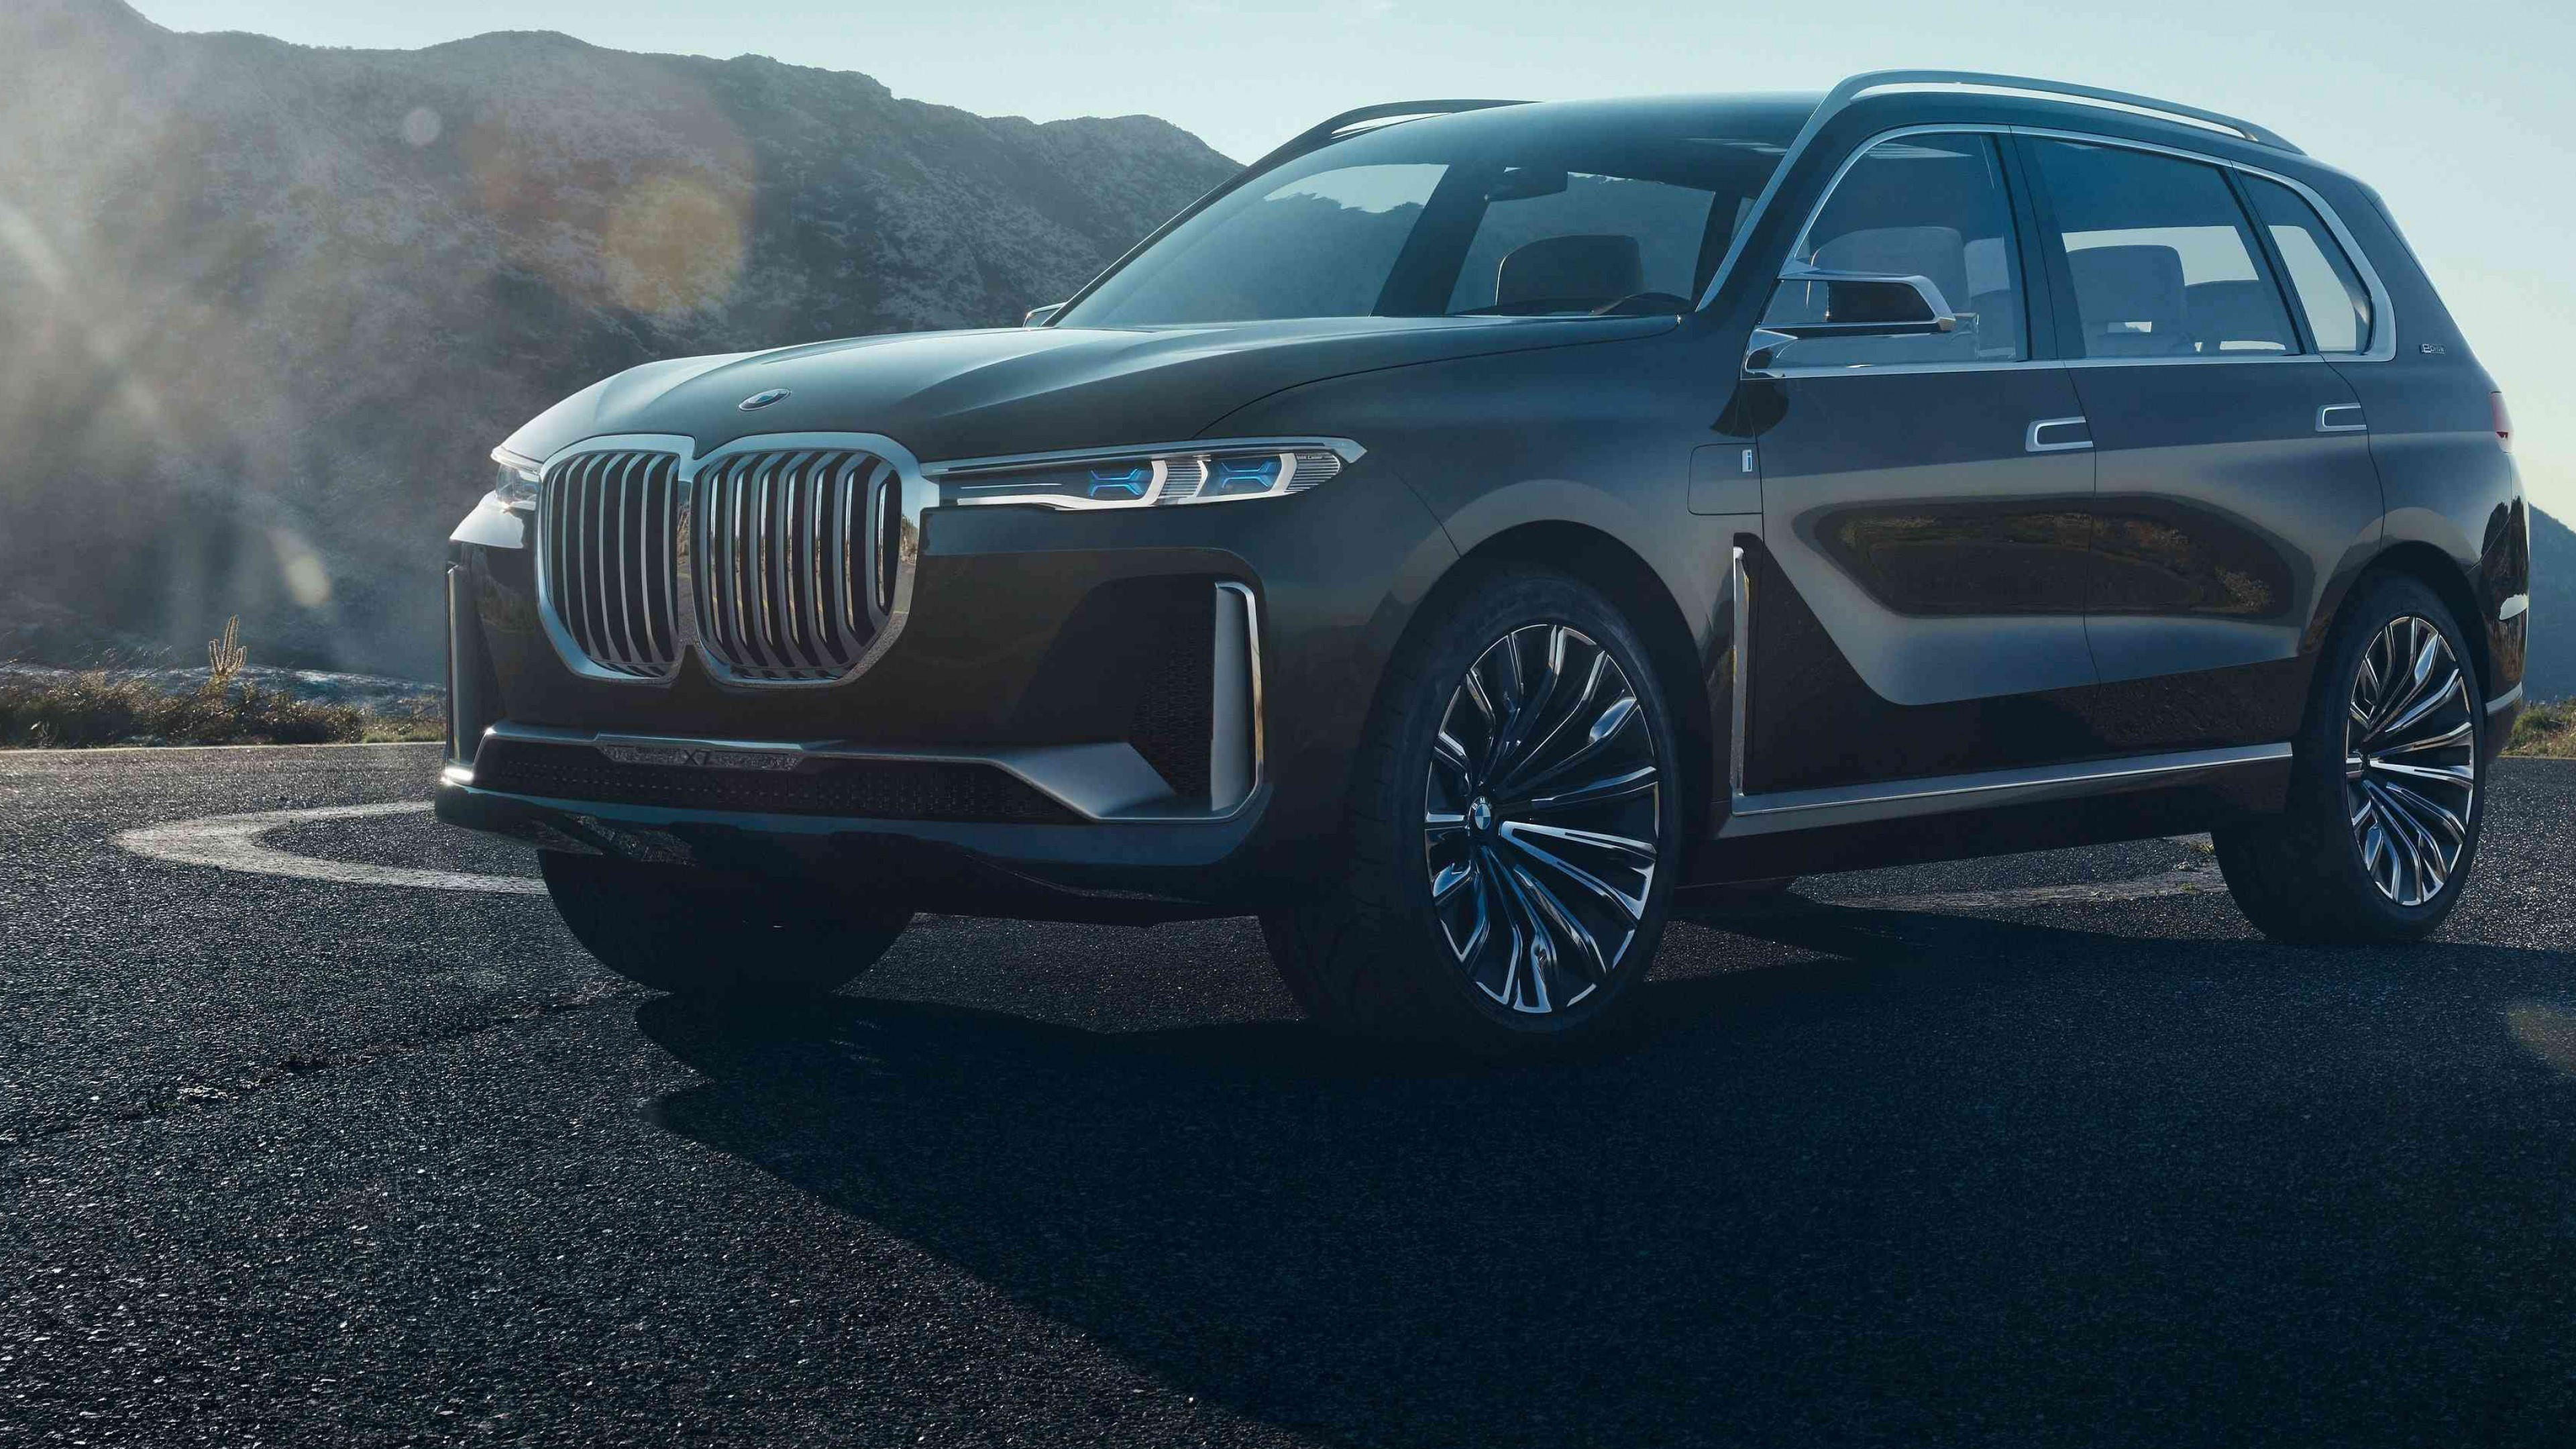 wallpaper bmw x7  2018 cars  4k  cars  u0026 bikes  15682